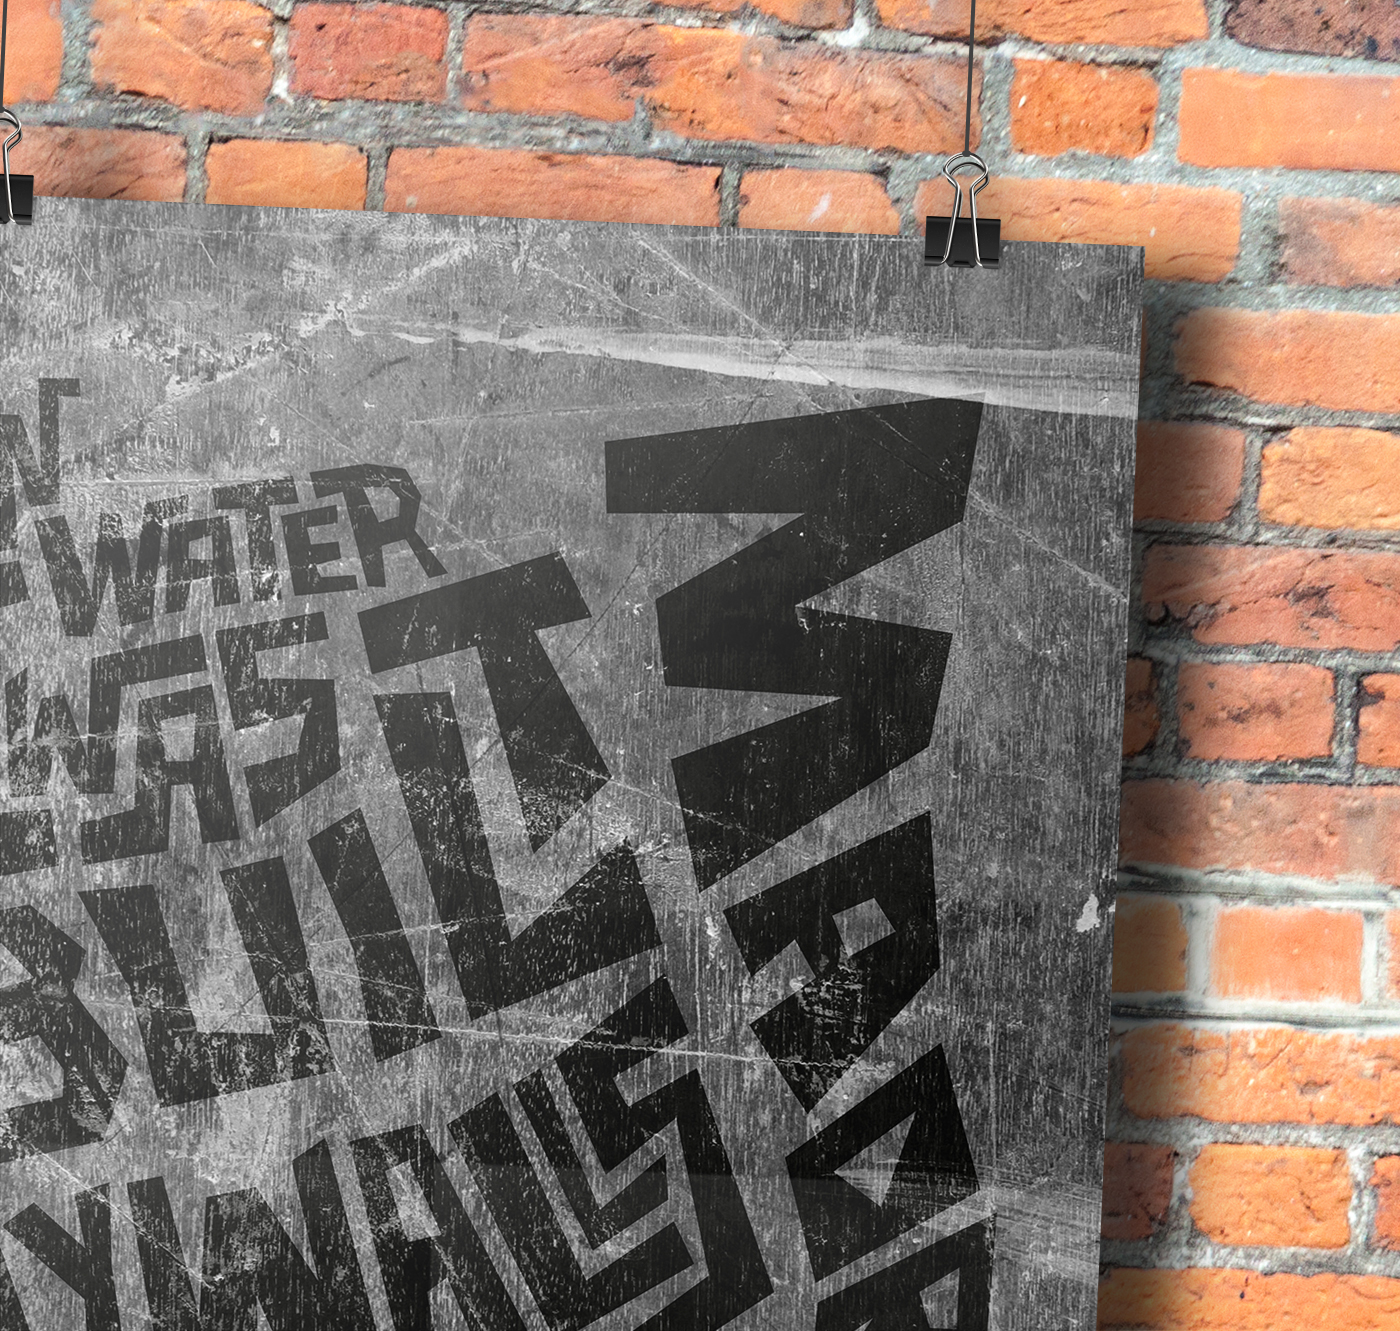 SUYT_poster_detail2